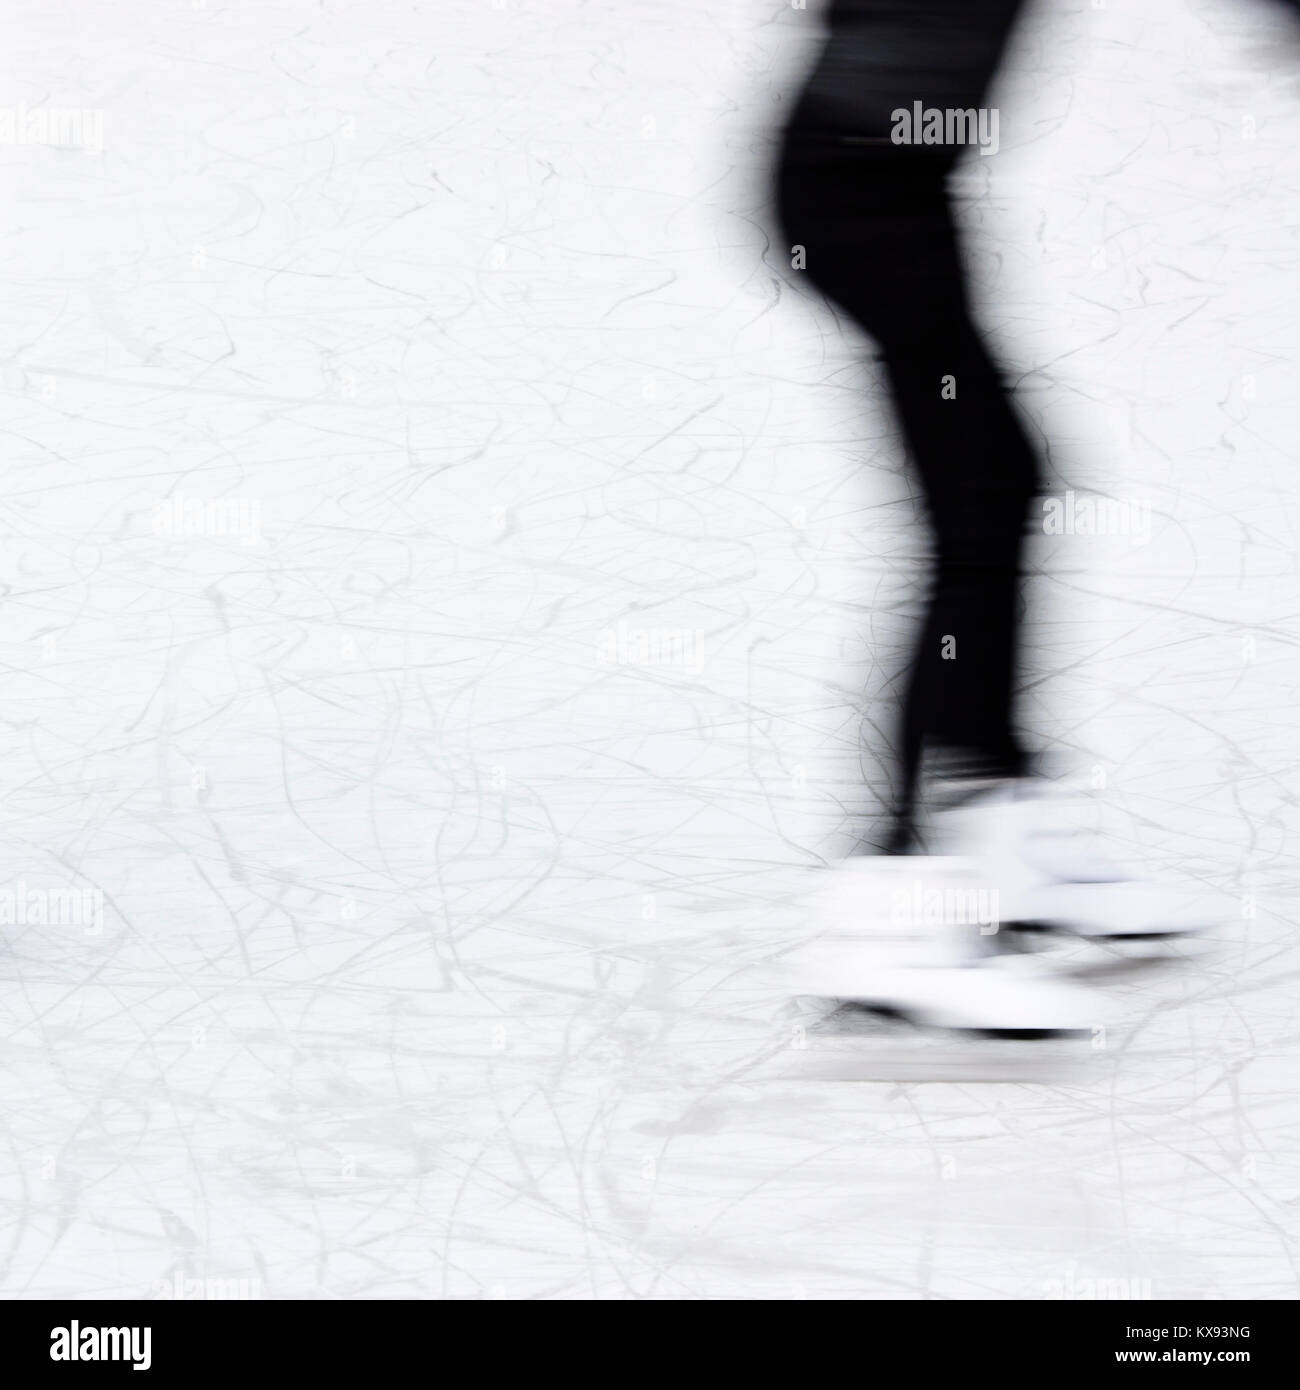 Arty blurry teenage girl ice skating legs , fun and winter recreation detail - Stock Image